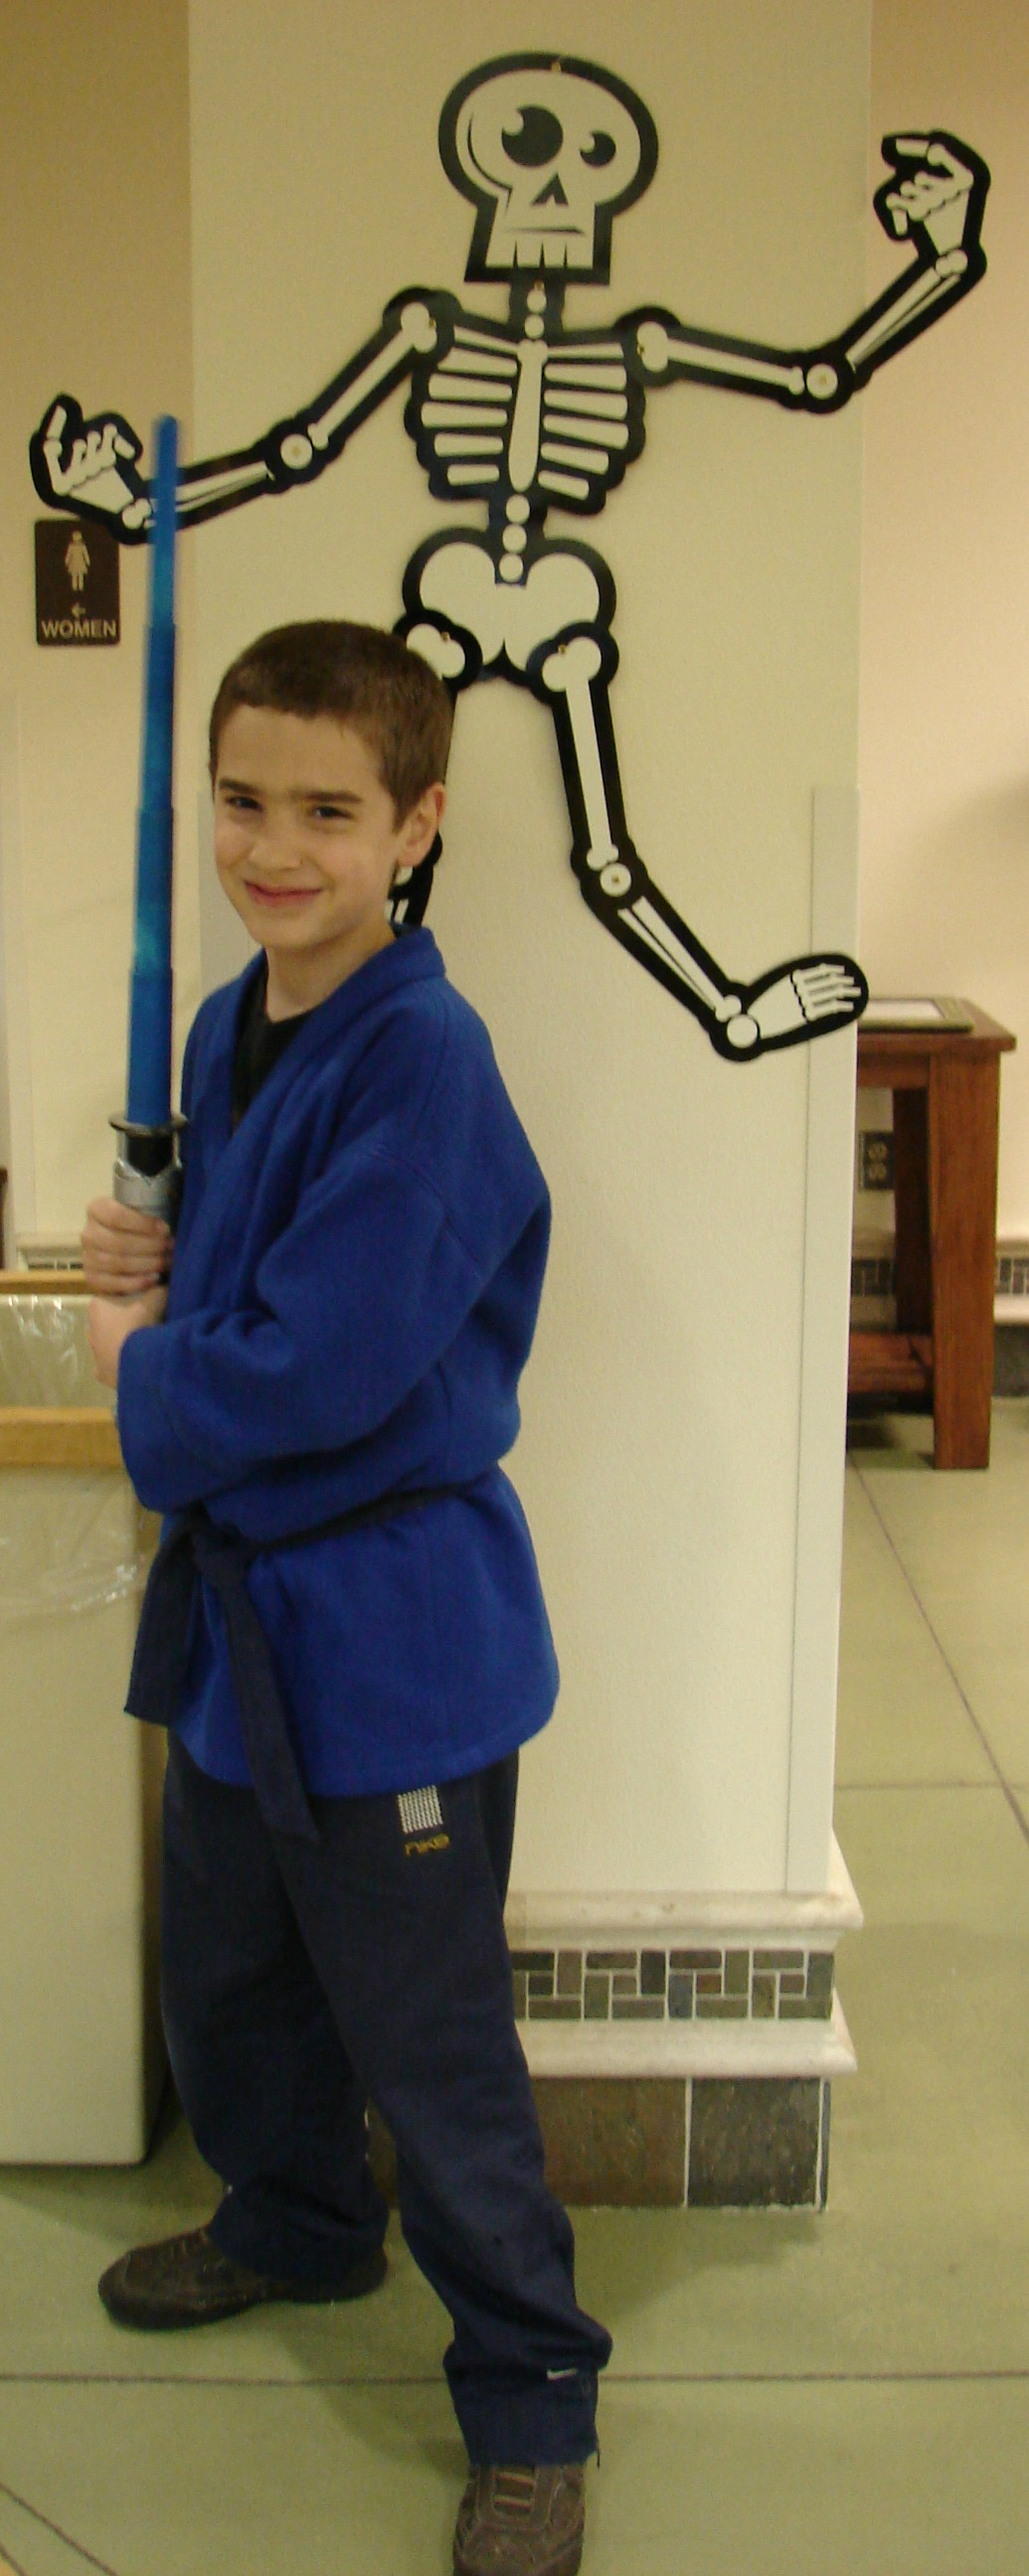 Jedi Knight using items in the house